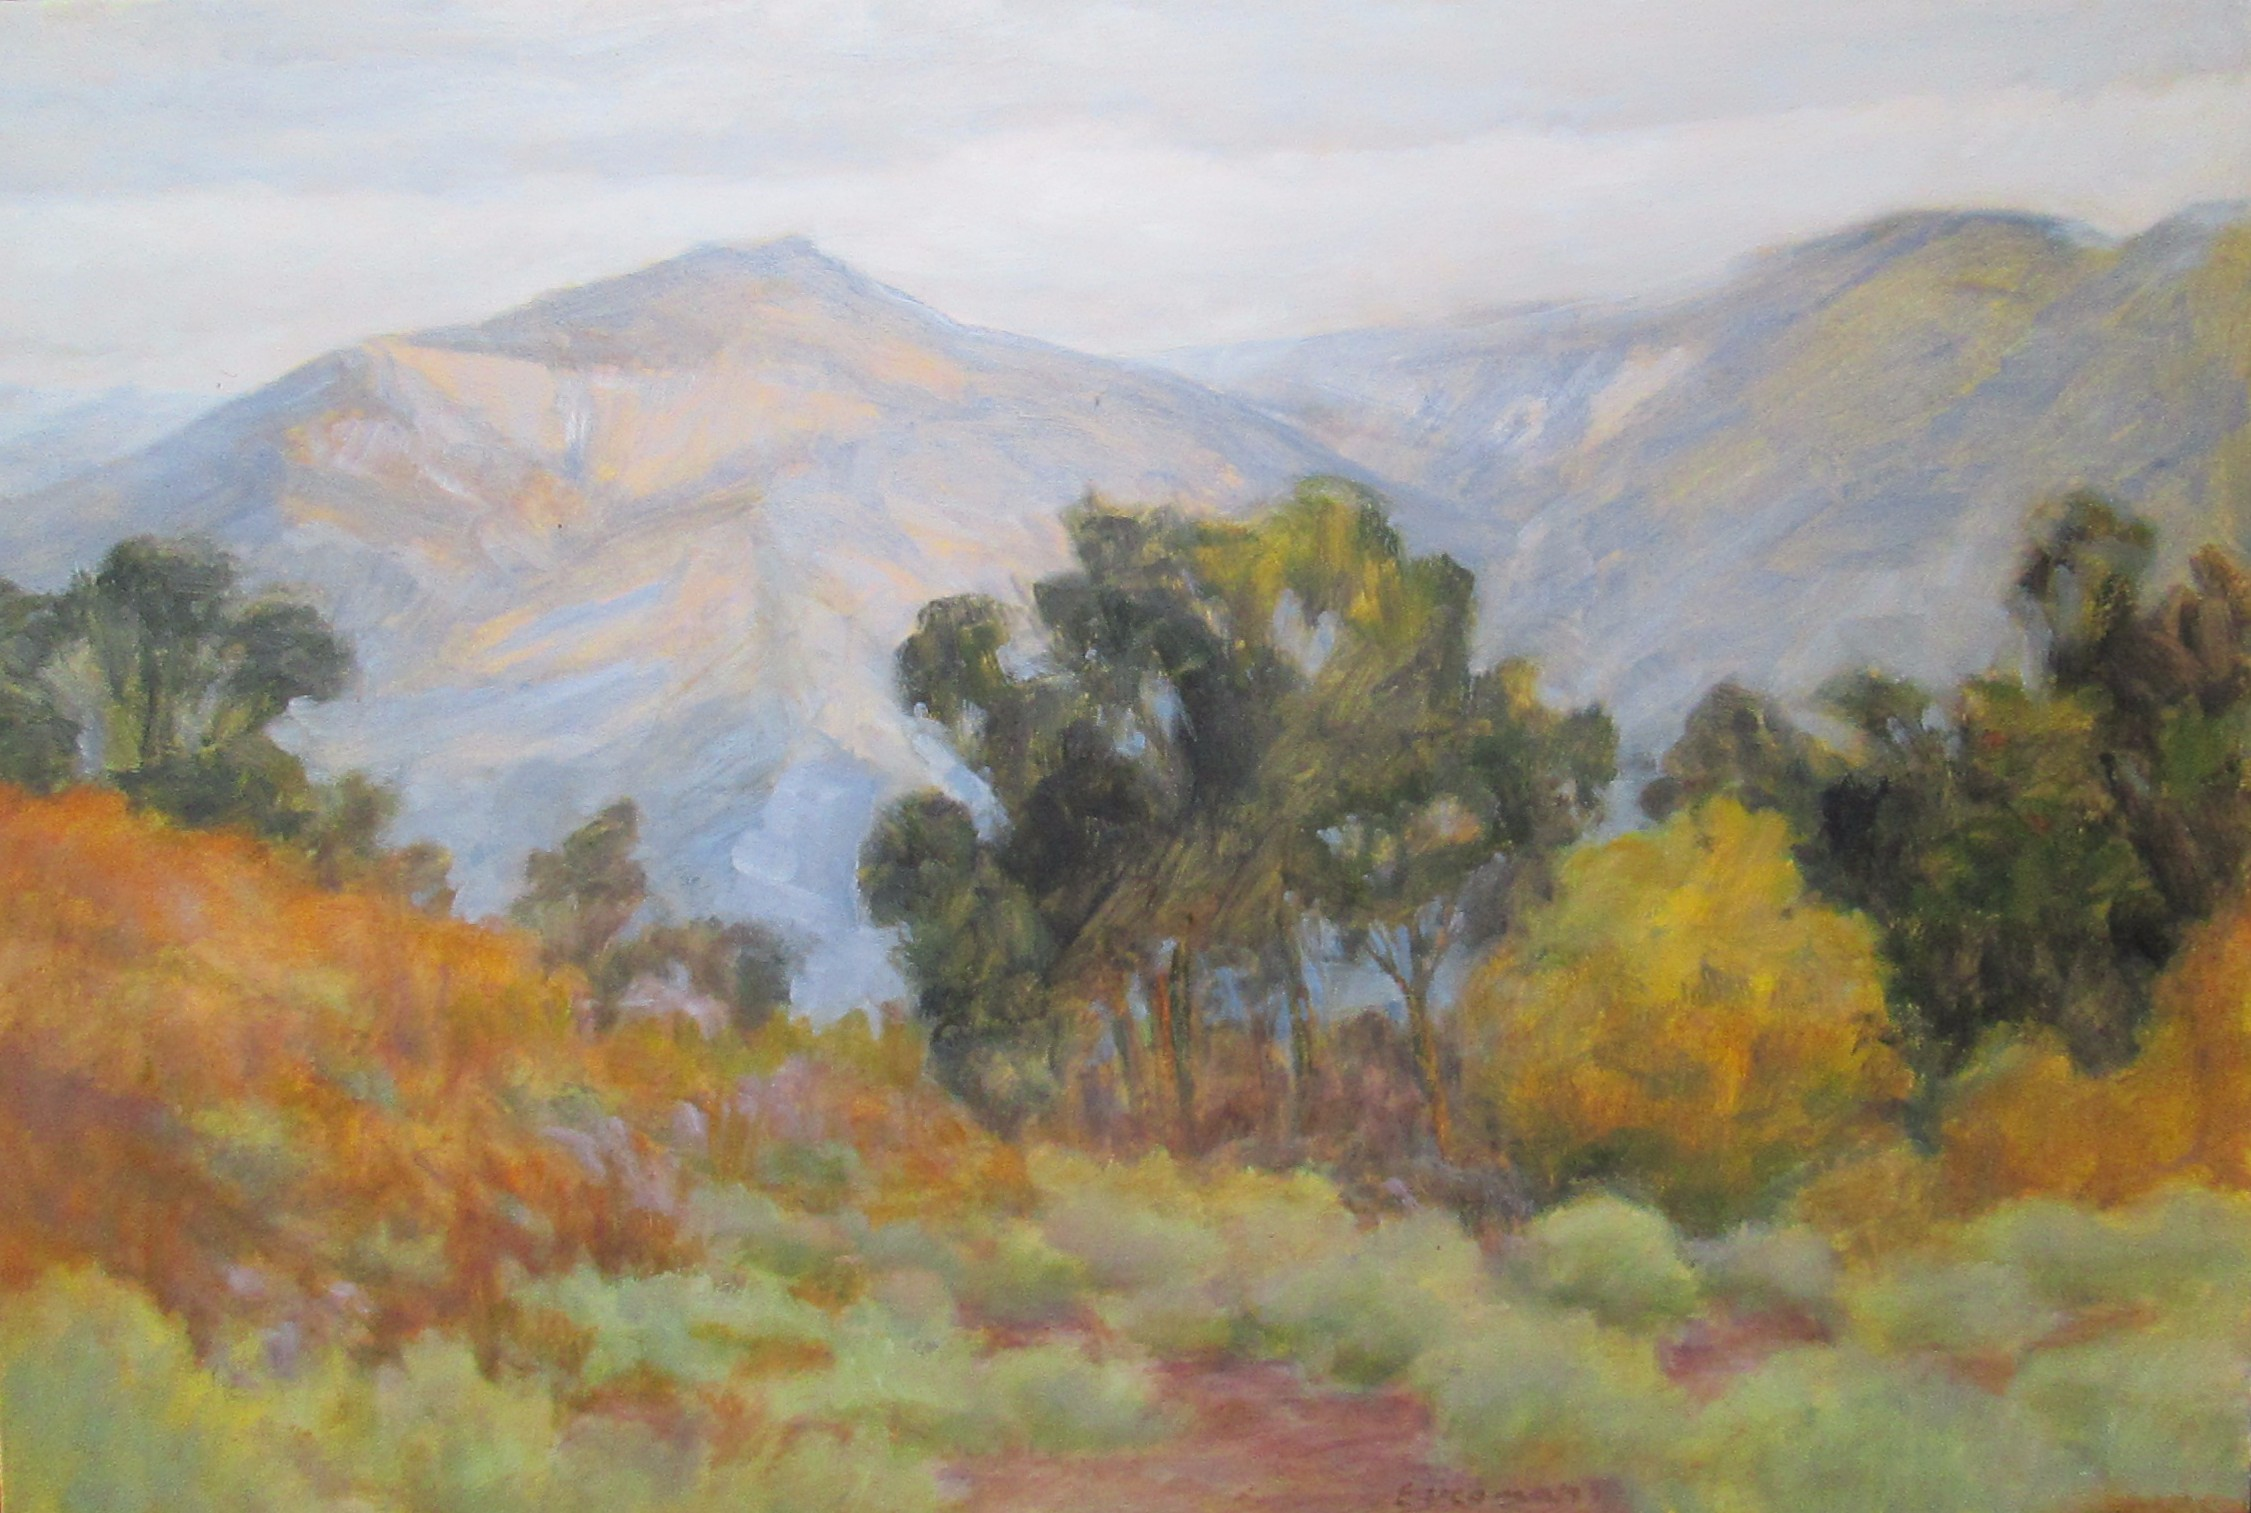 Ellen Yeomans – CREEKSIDE at ARROYO BURRO